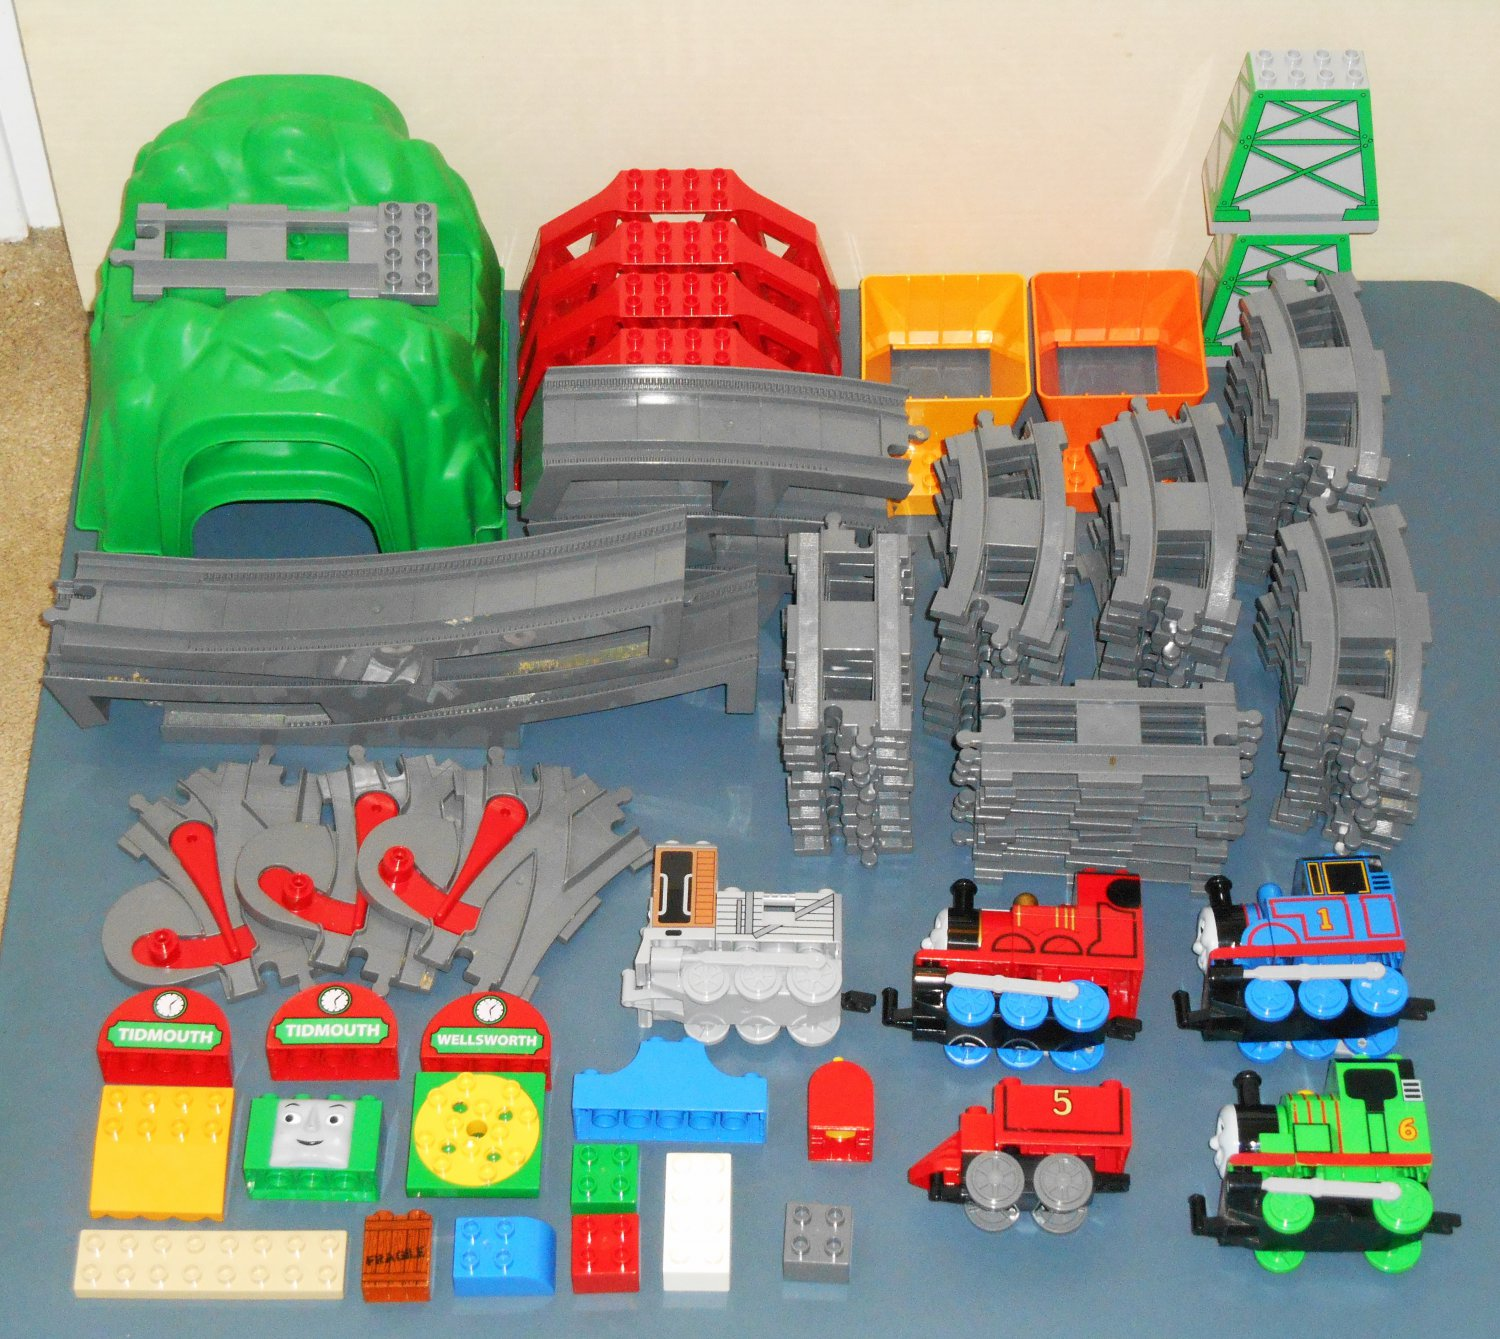 Lego Duplo Thomas the Train Tank Engine Parts Lot 6392 6393 31365 Green Playscape Tunnel Switch